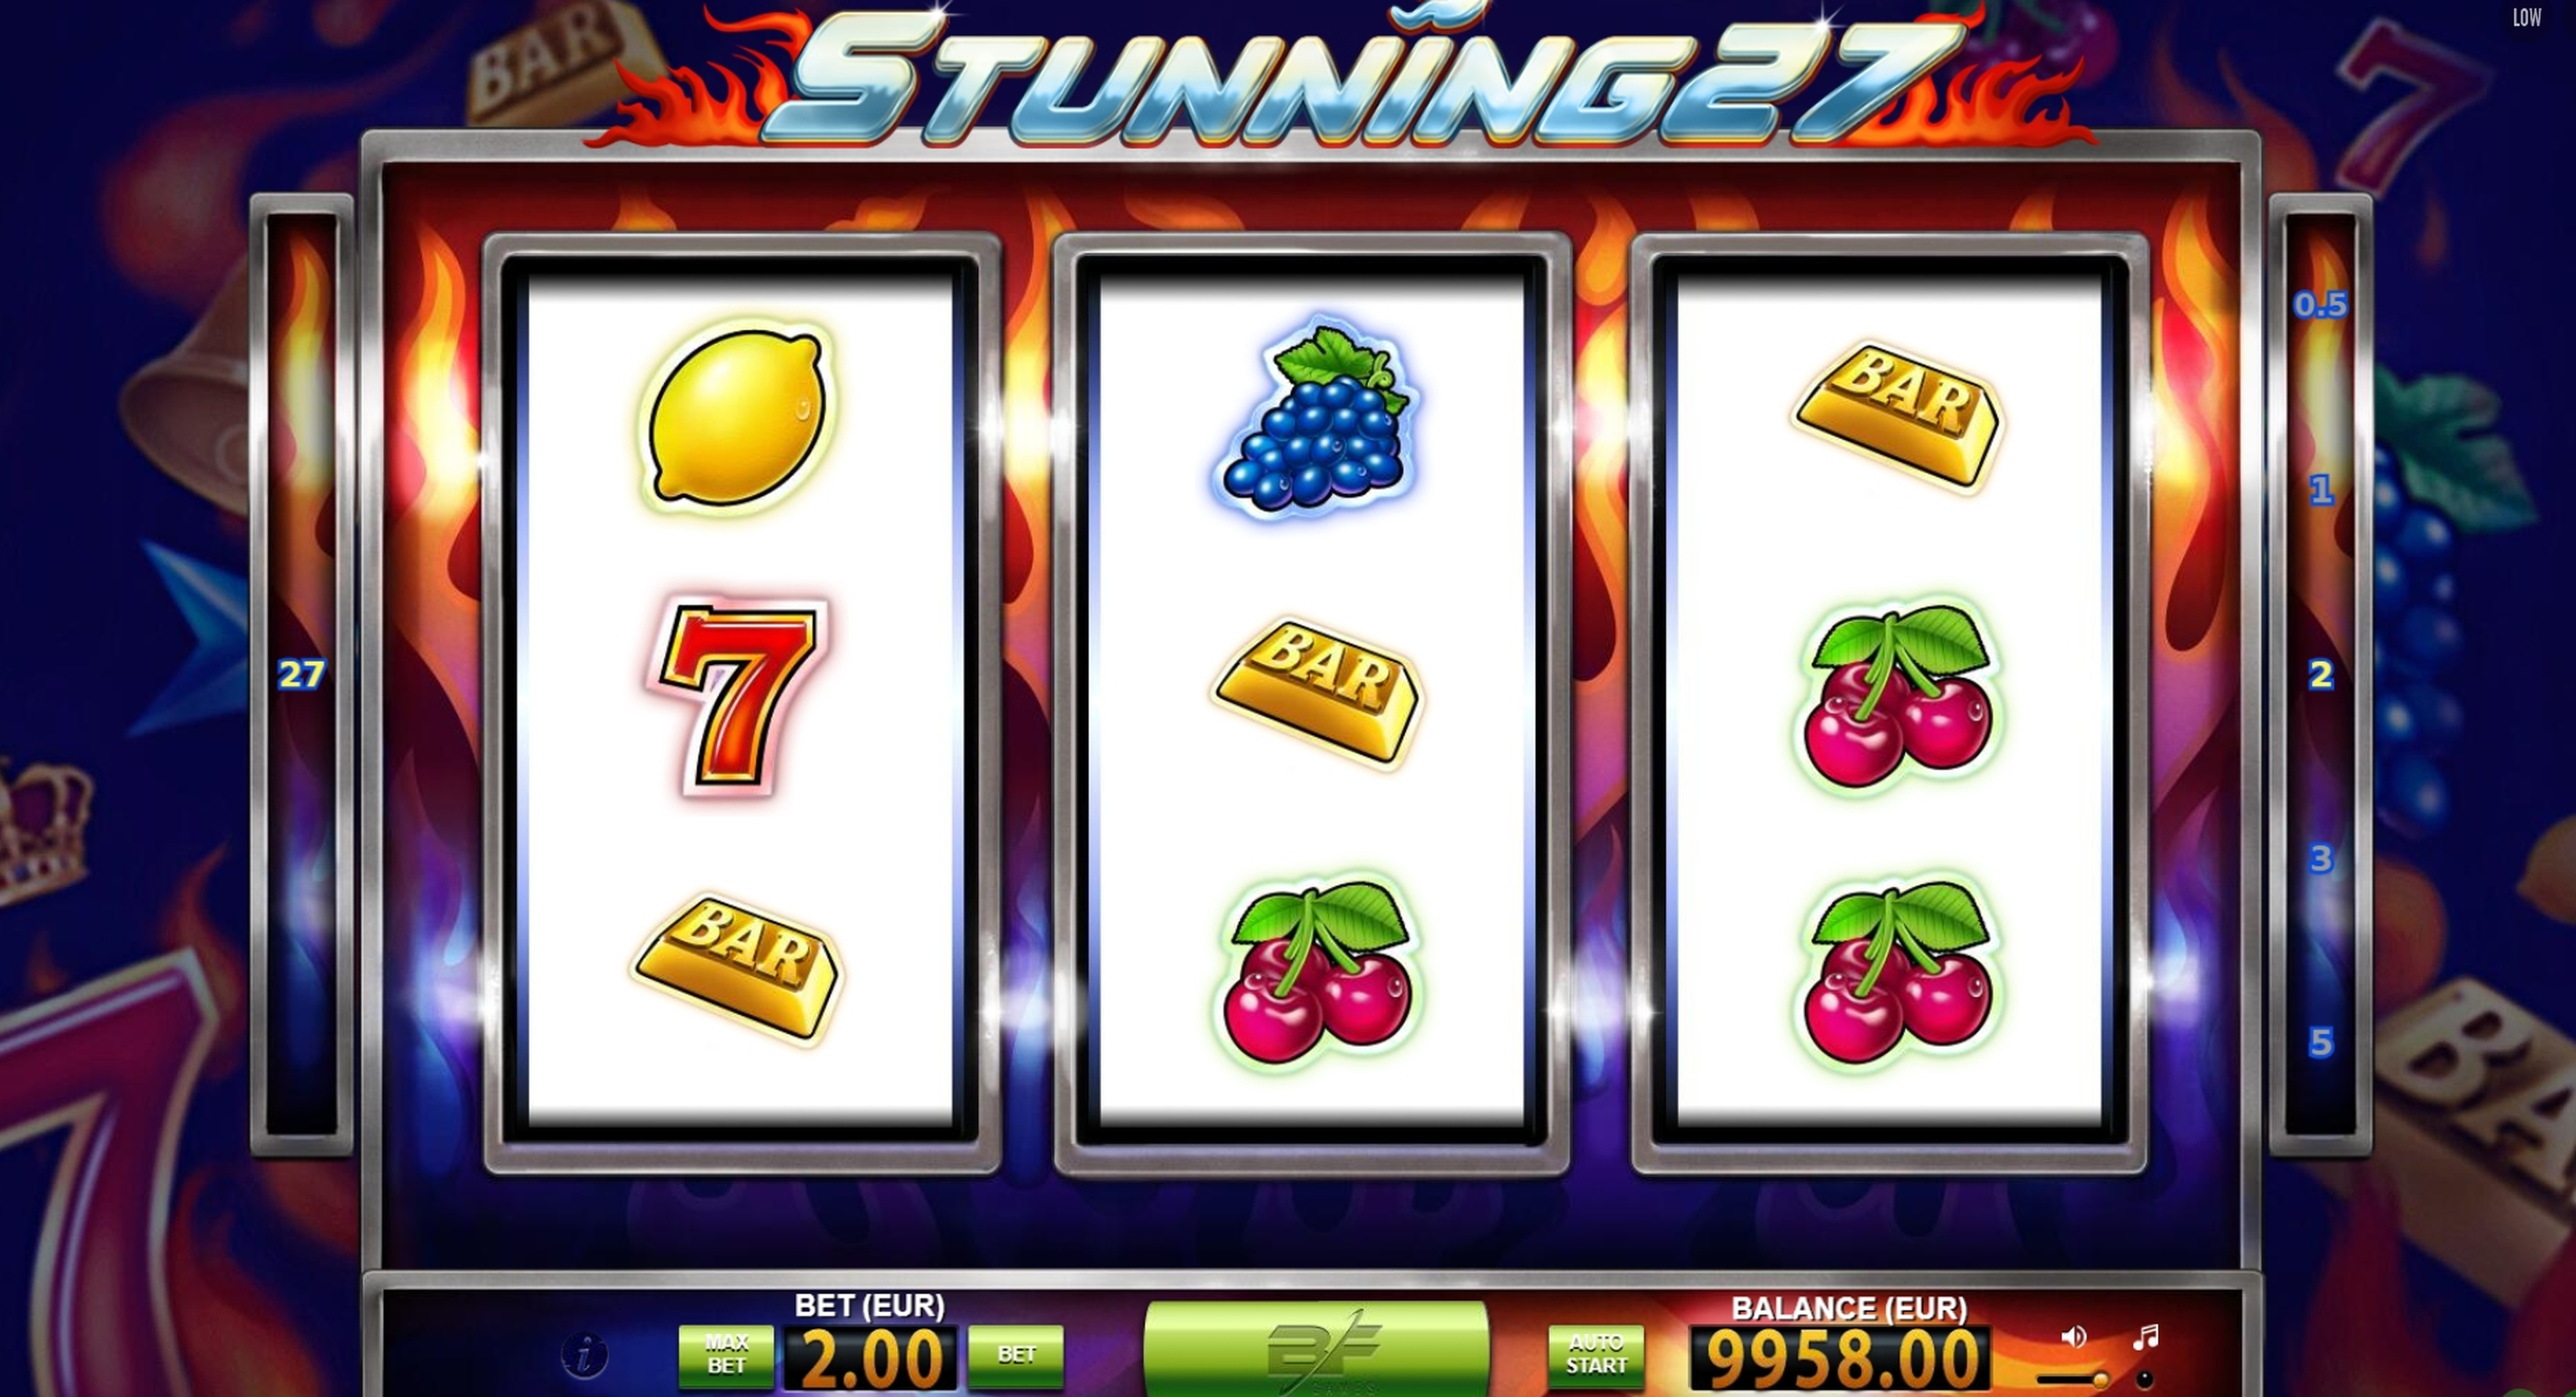 Win Money in Stunning 27 Free Slot Game by BF Games